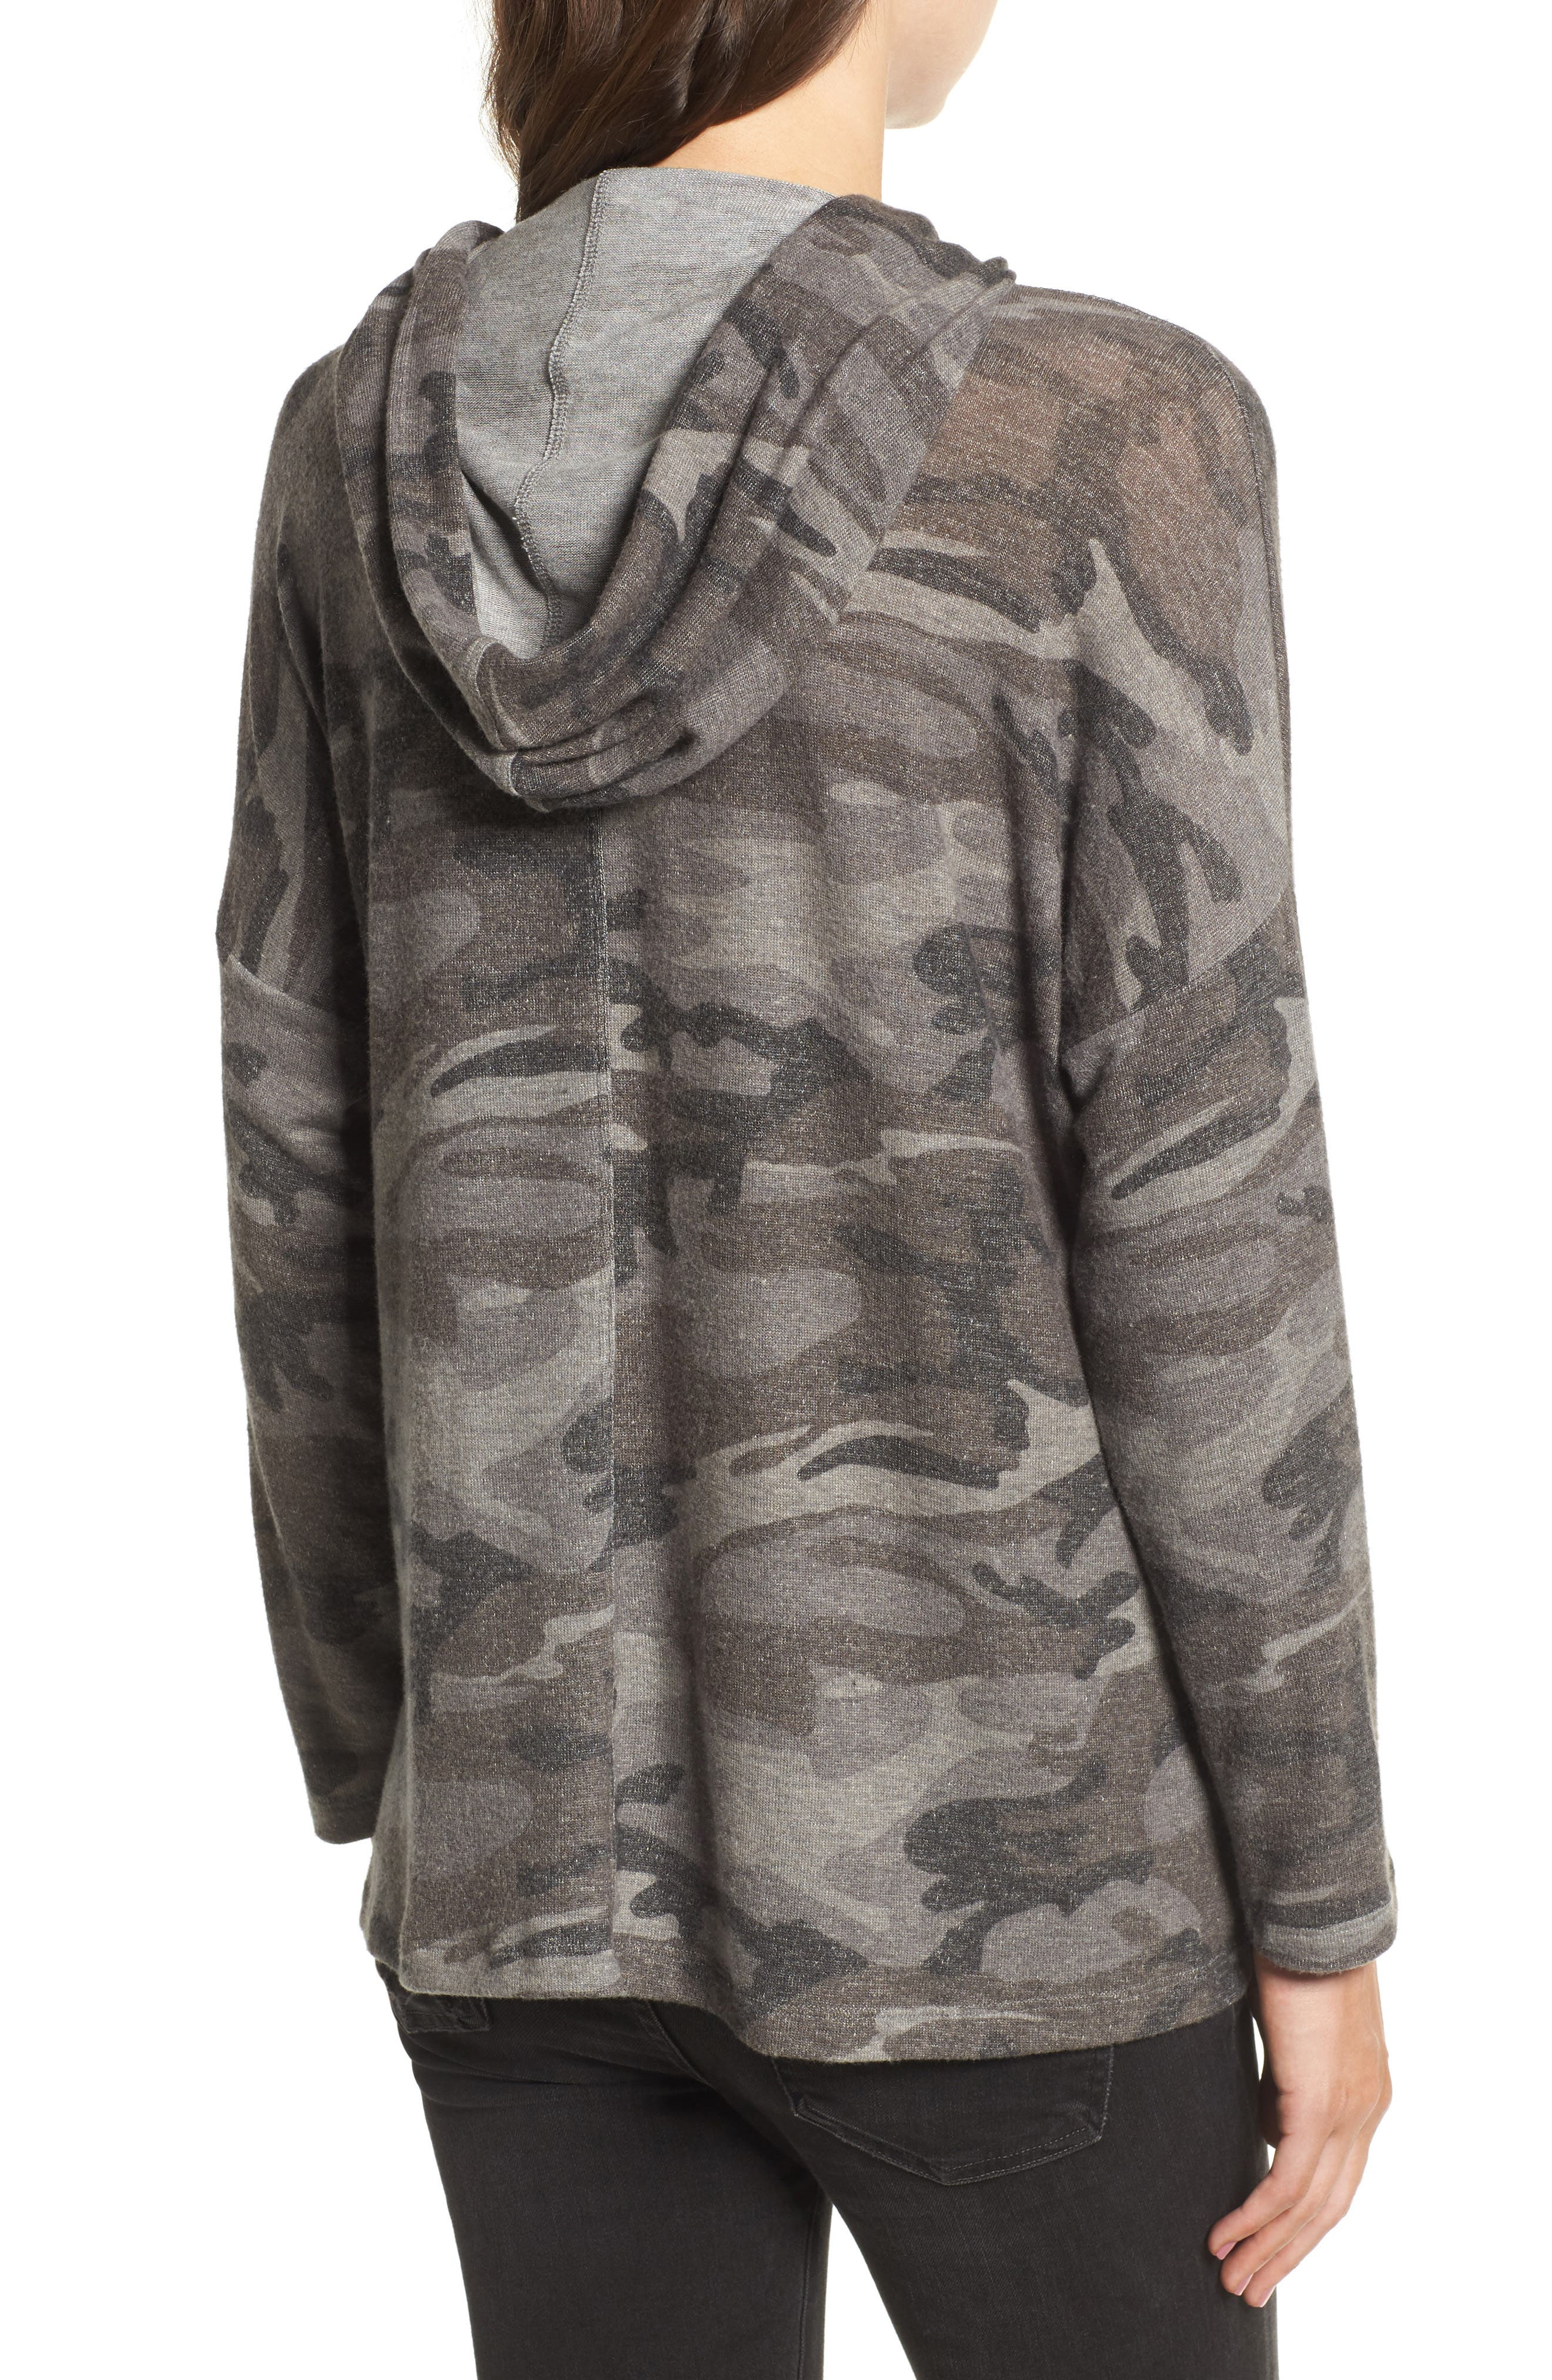 Army of Lovers Camo Hoodie,                             Alternate thumbnail 2, color,                             026